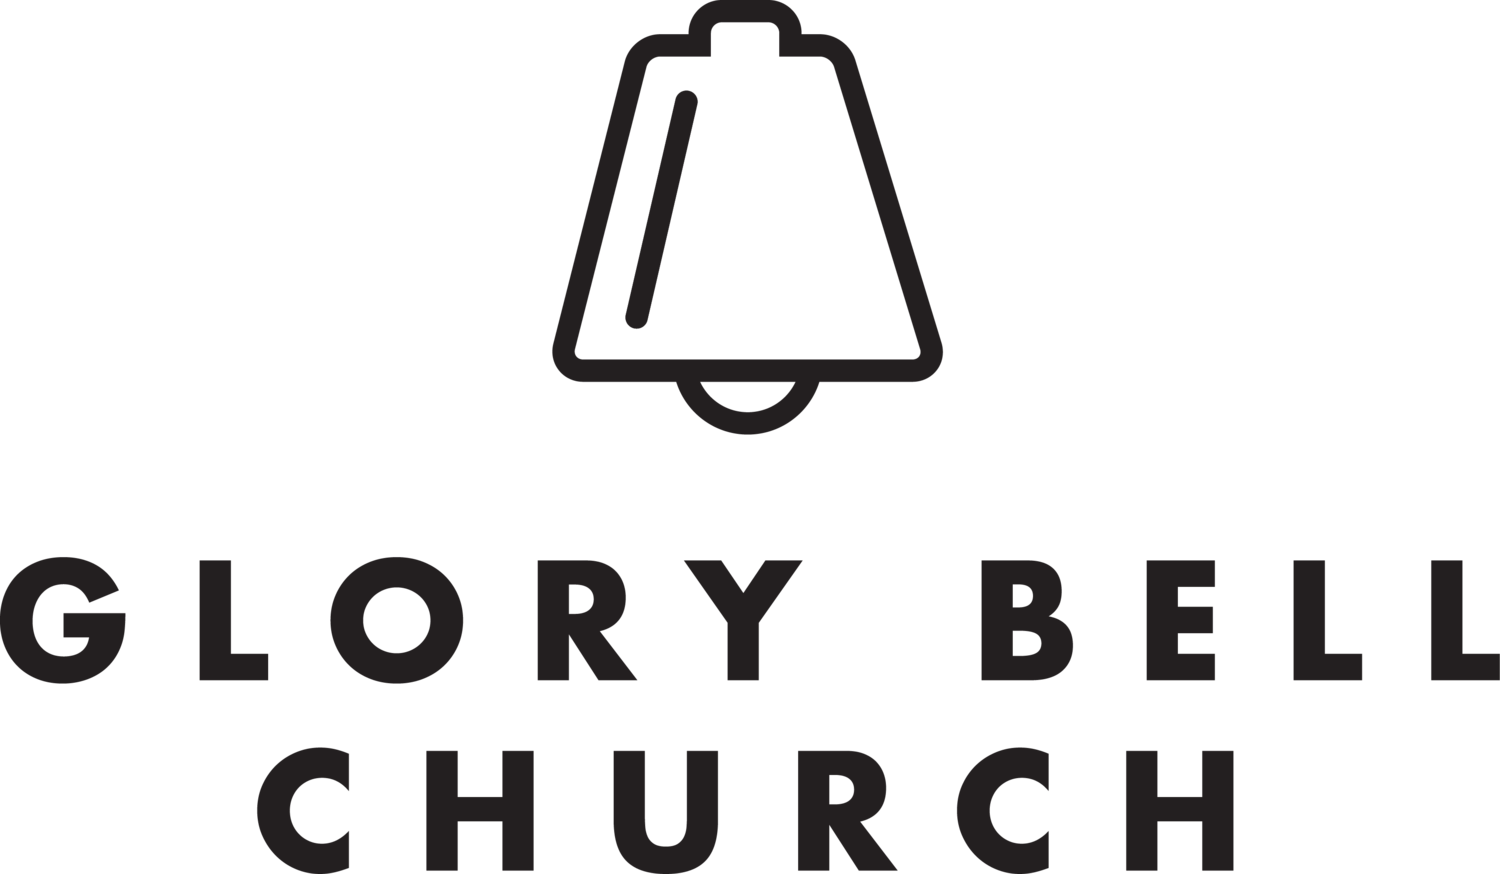 Glory Bell Church